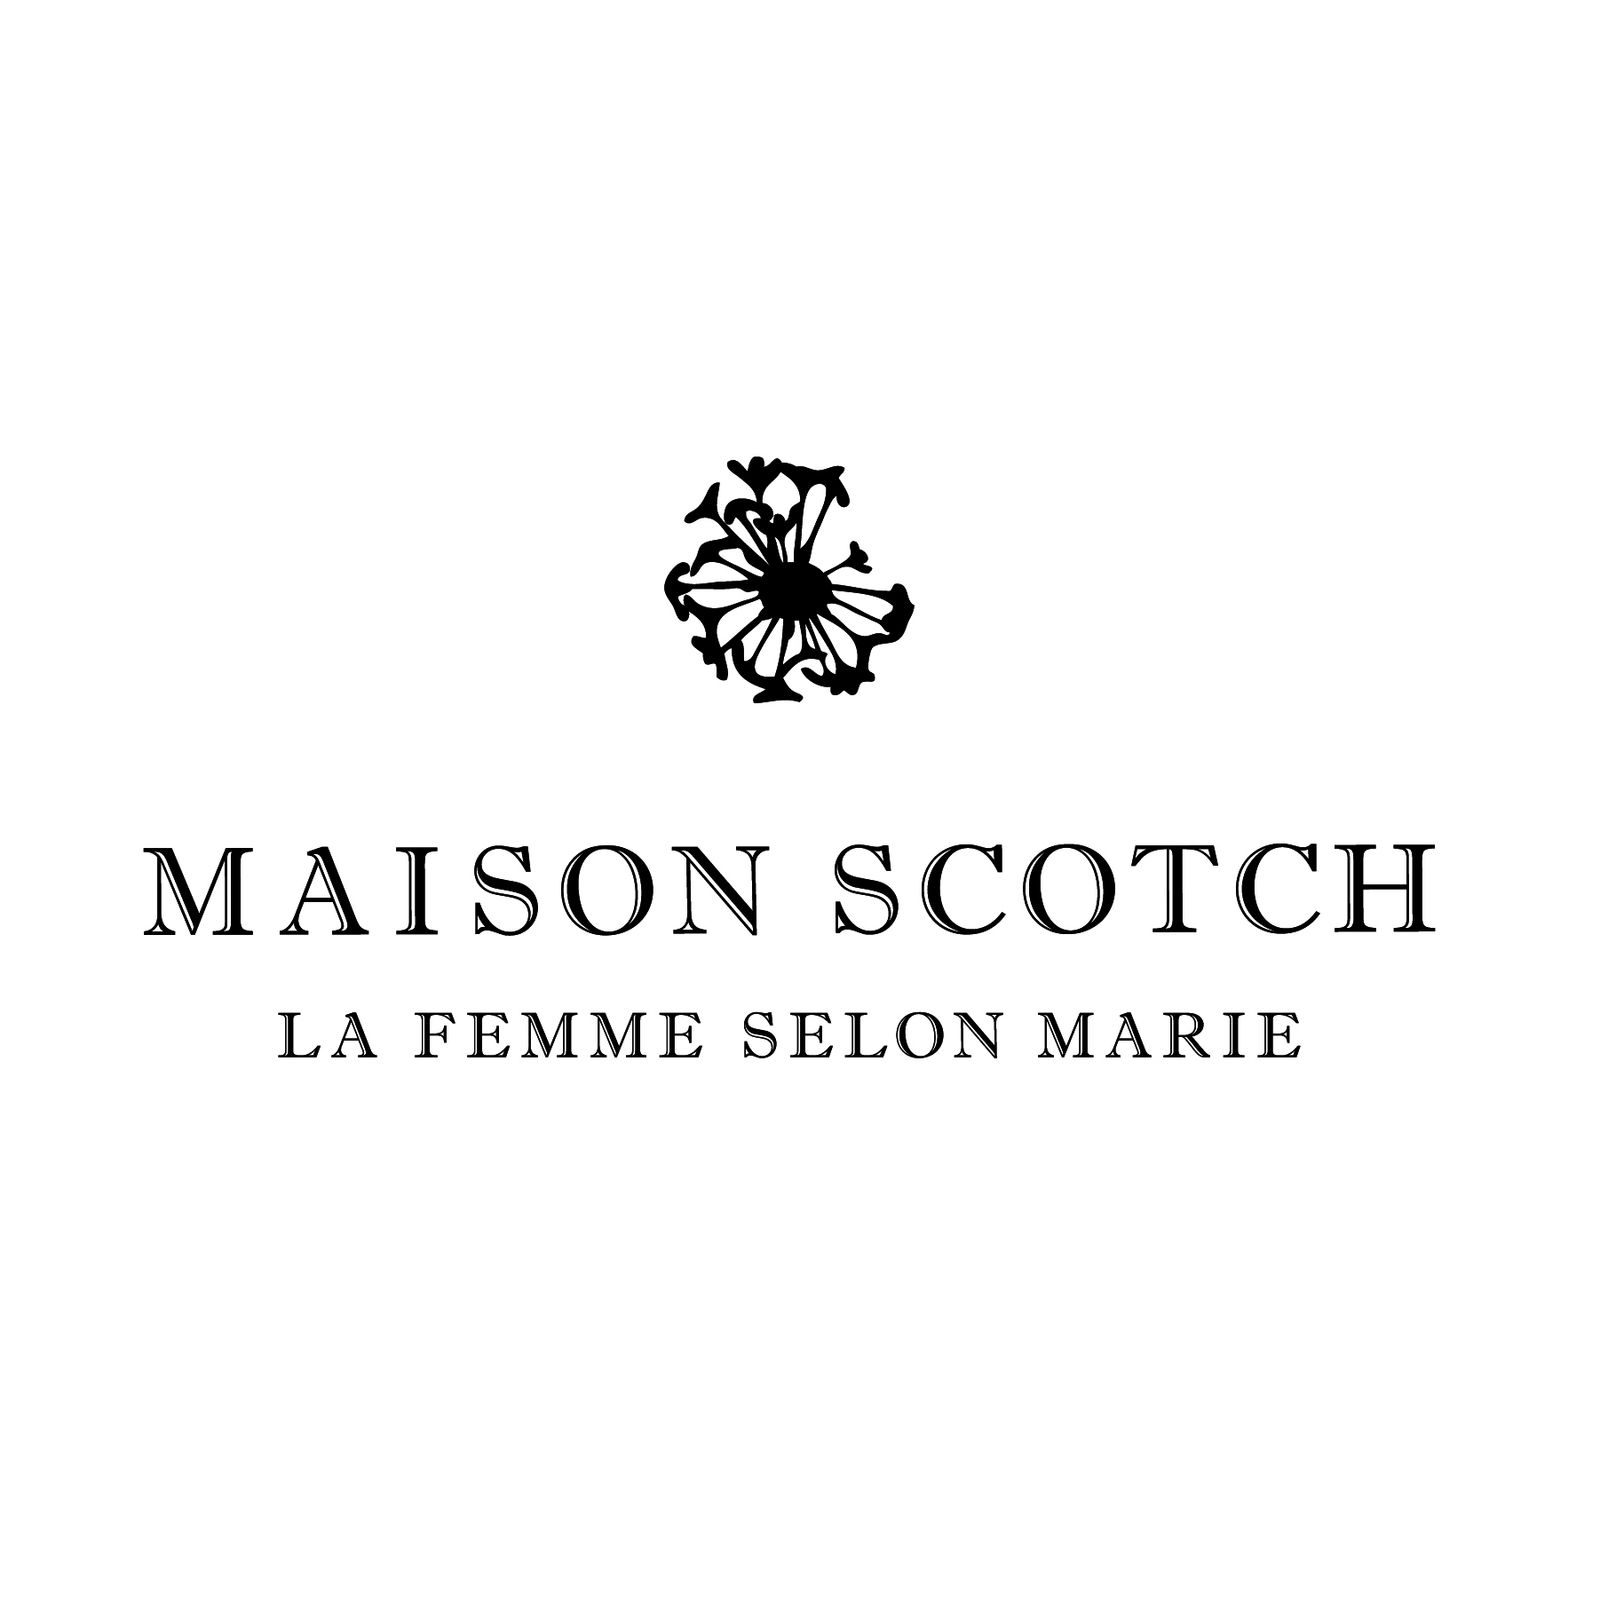 MAISON SCOTCH (Bild 1)